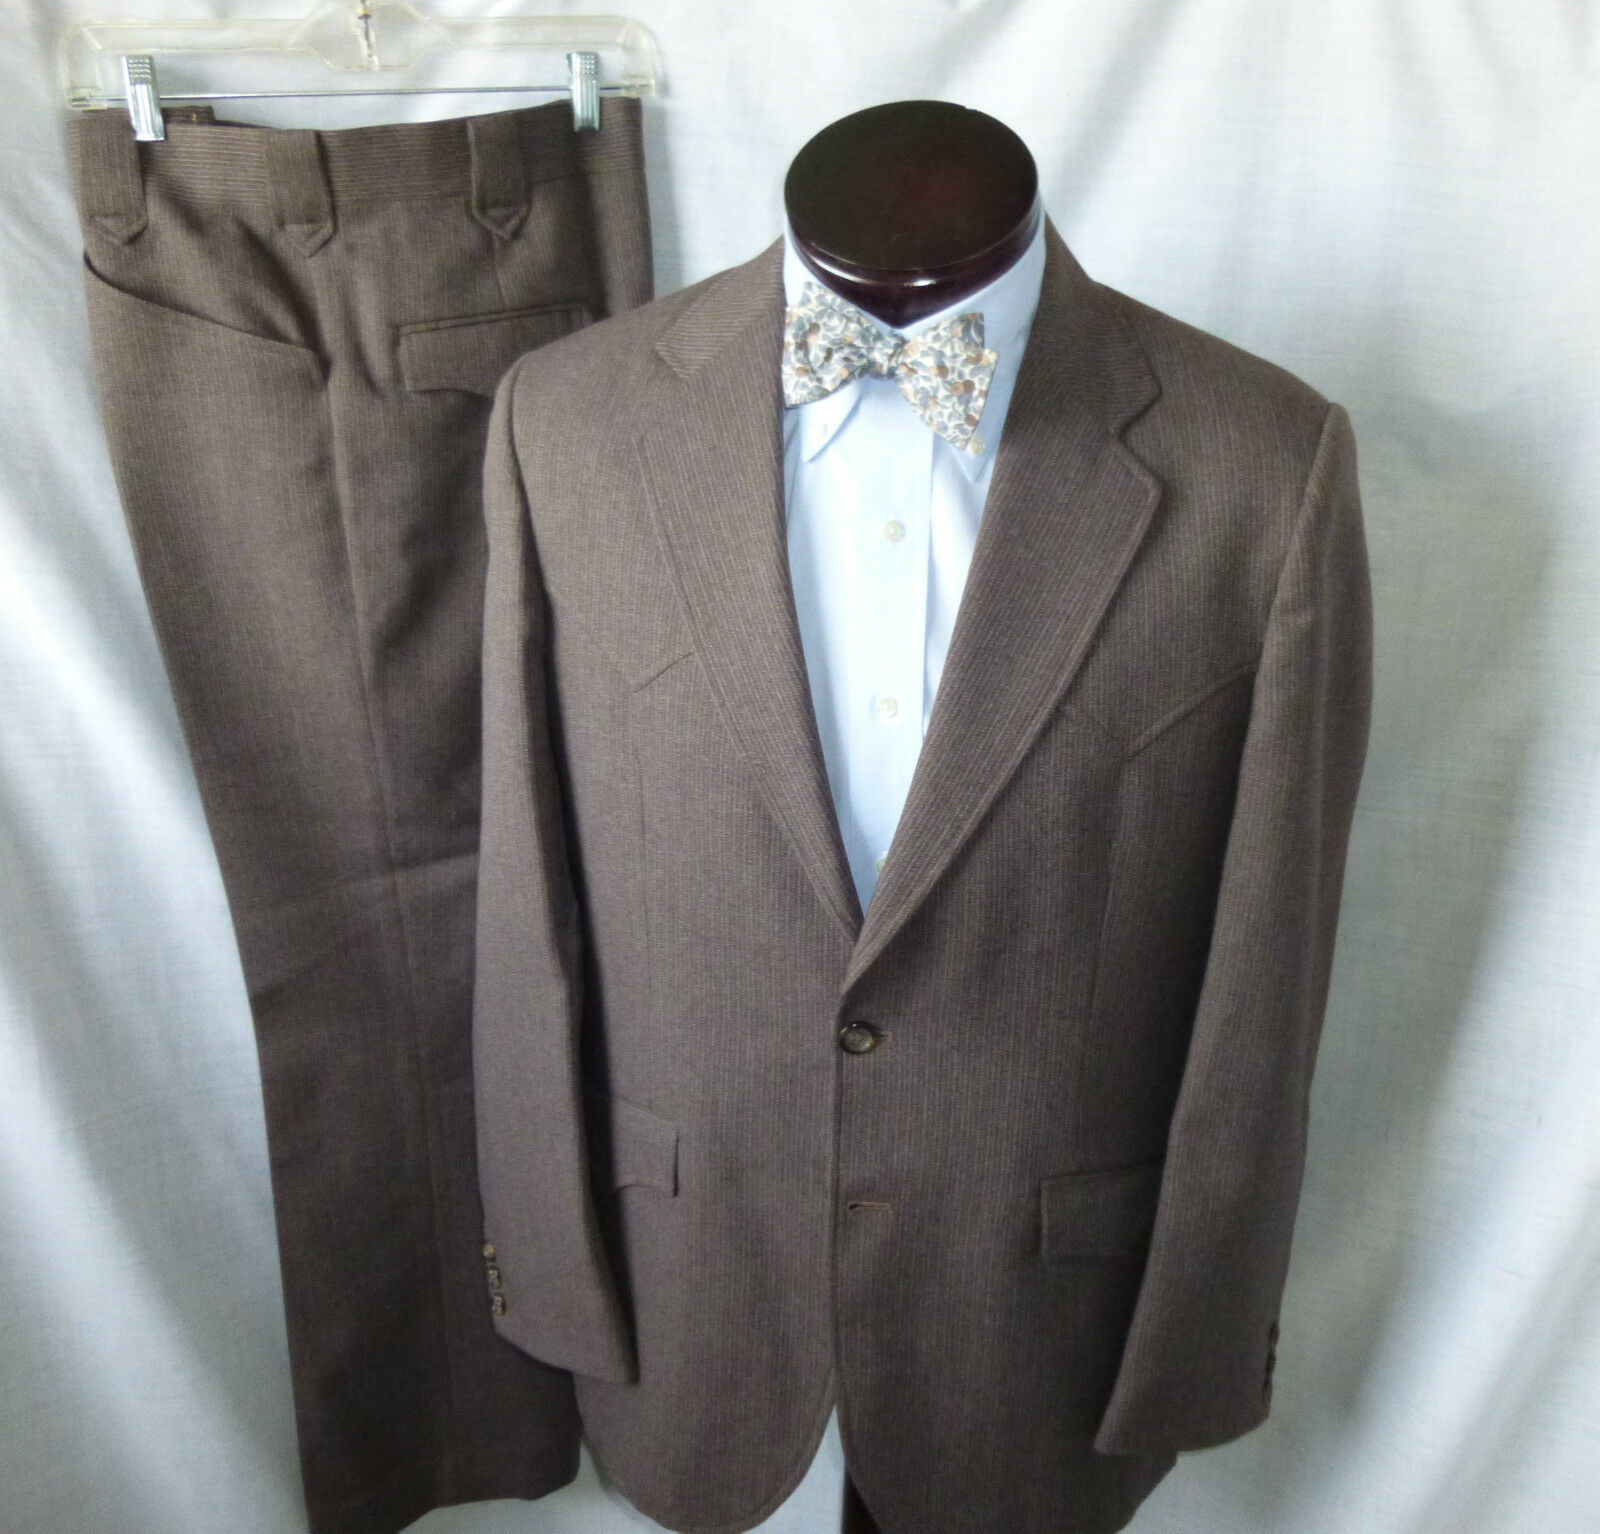 CIRCLE S,Brown Pinstripe,Western-style,2 Pce Suit,40R